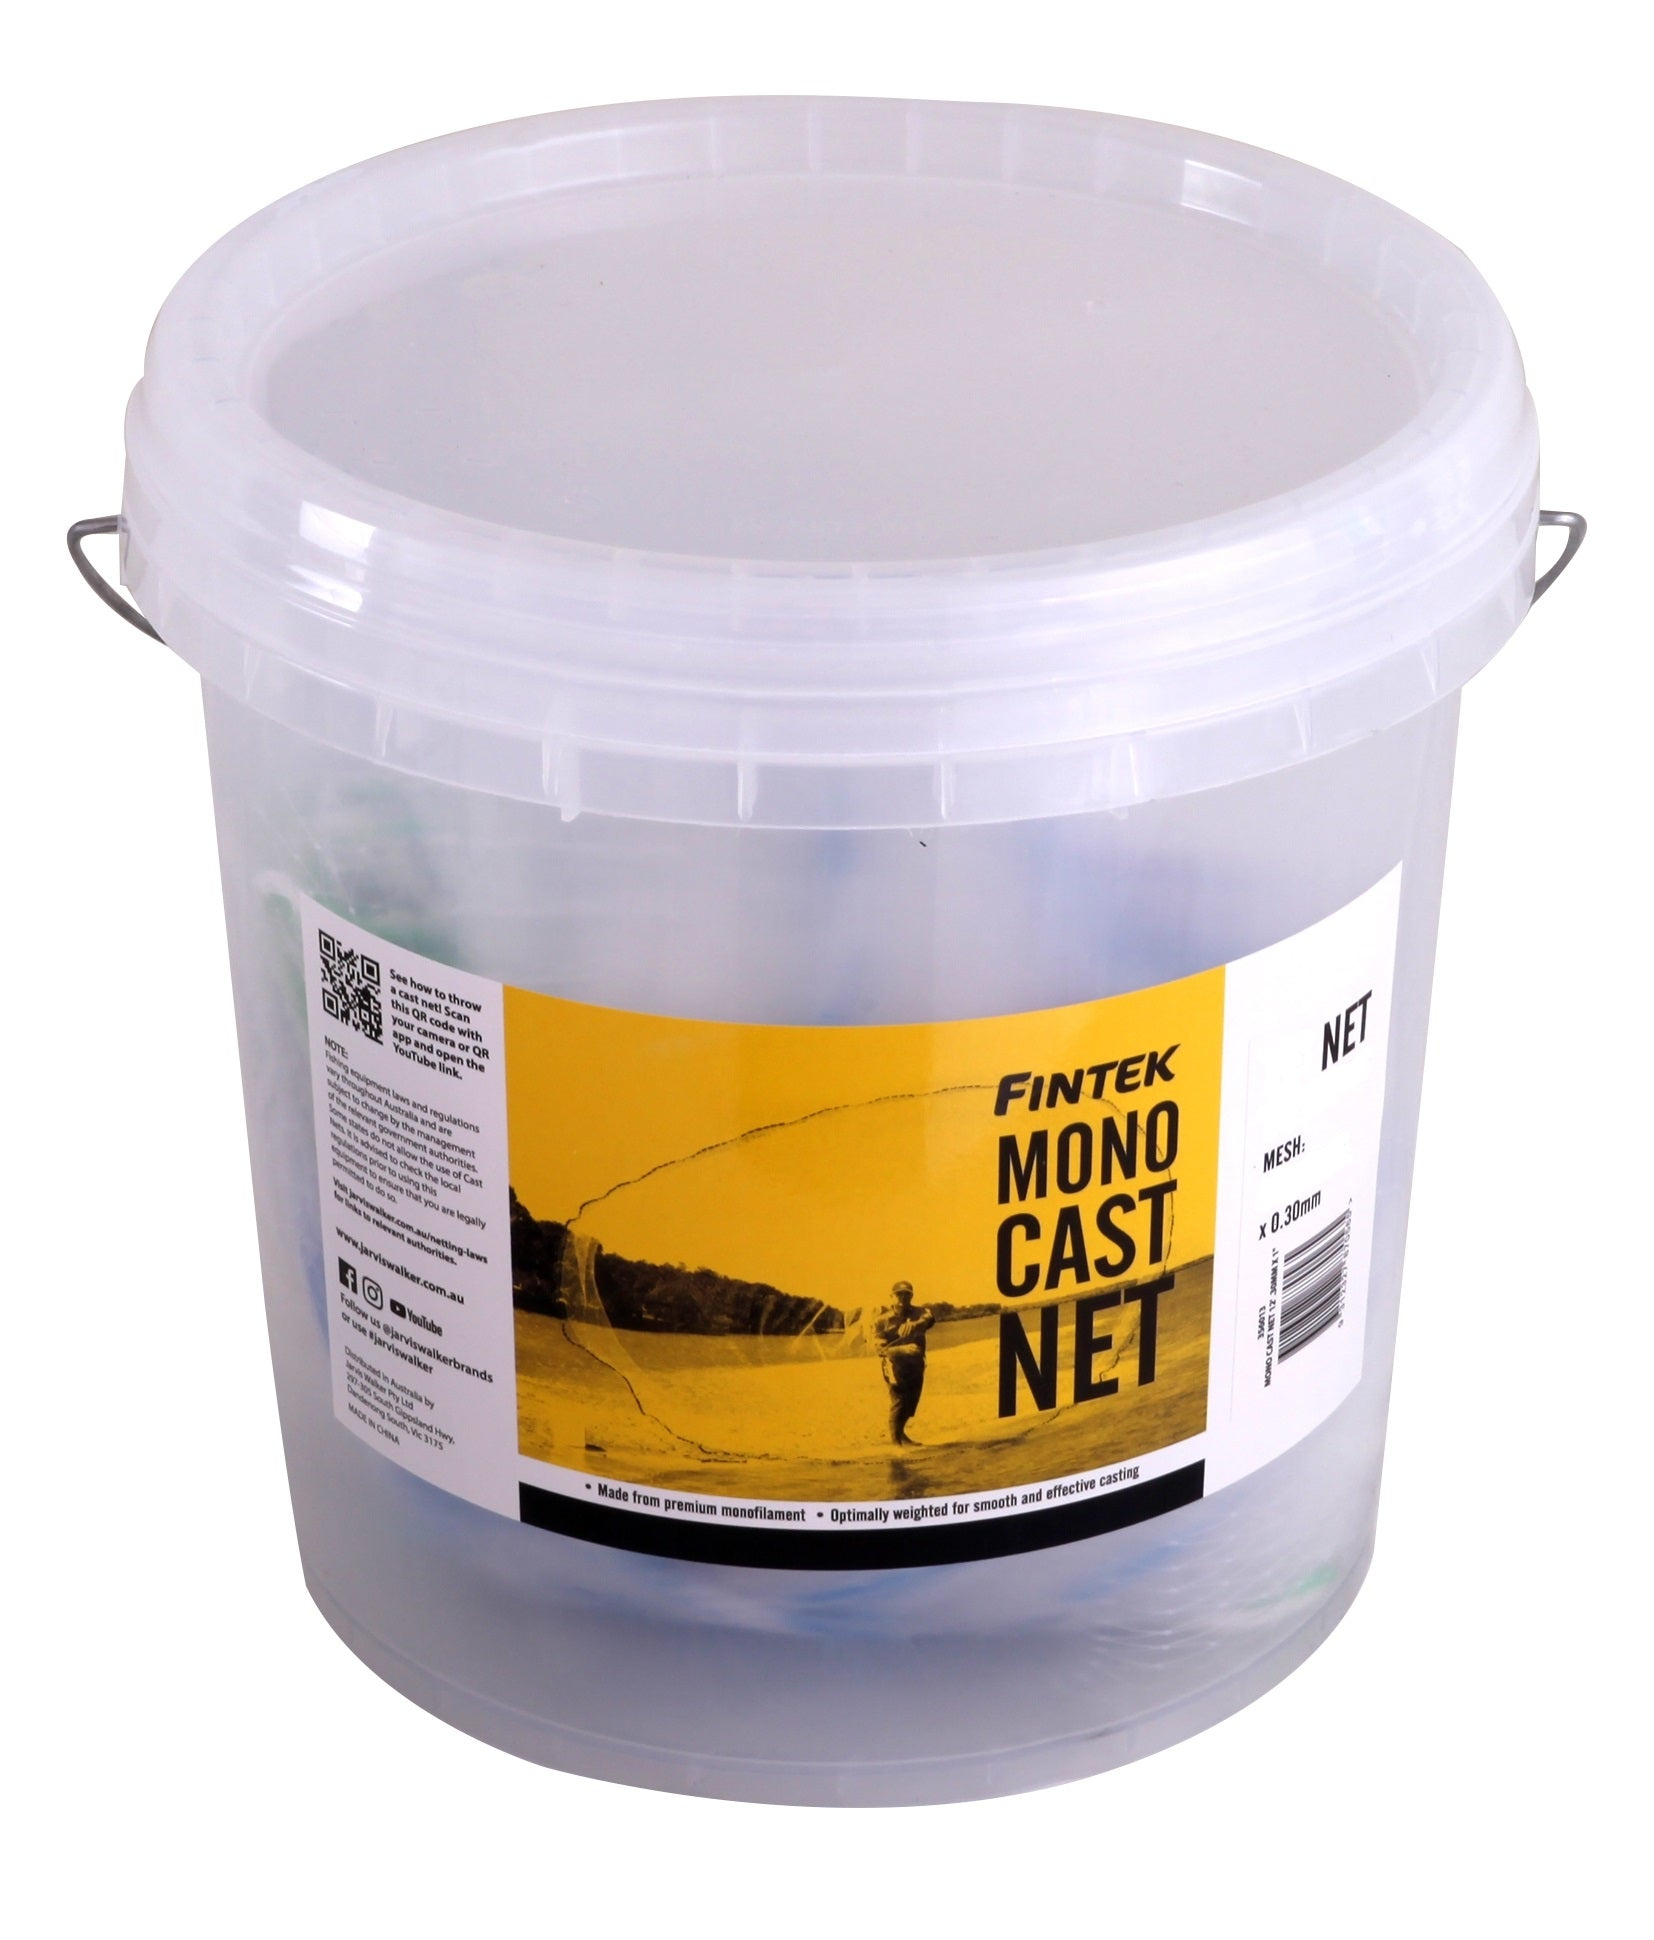 Fintek Bottom Pocket Cast Net